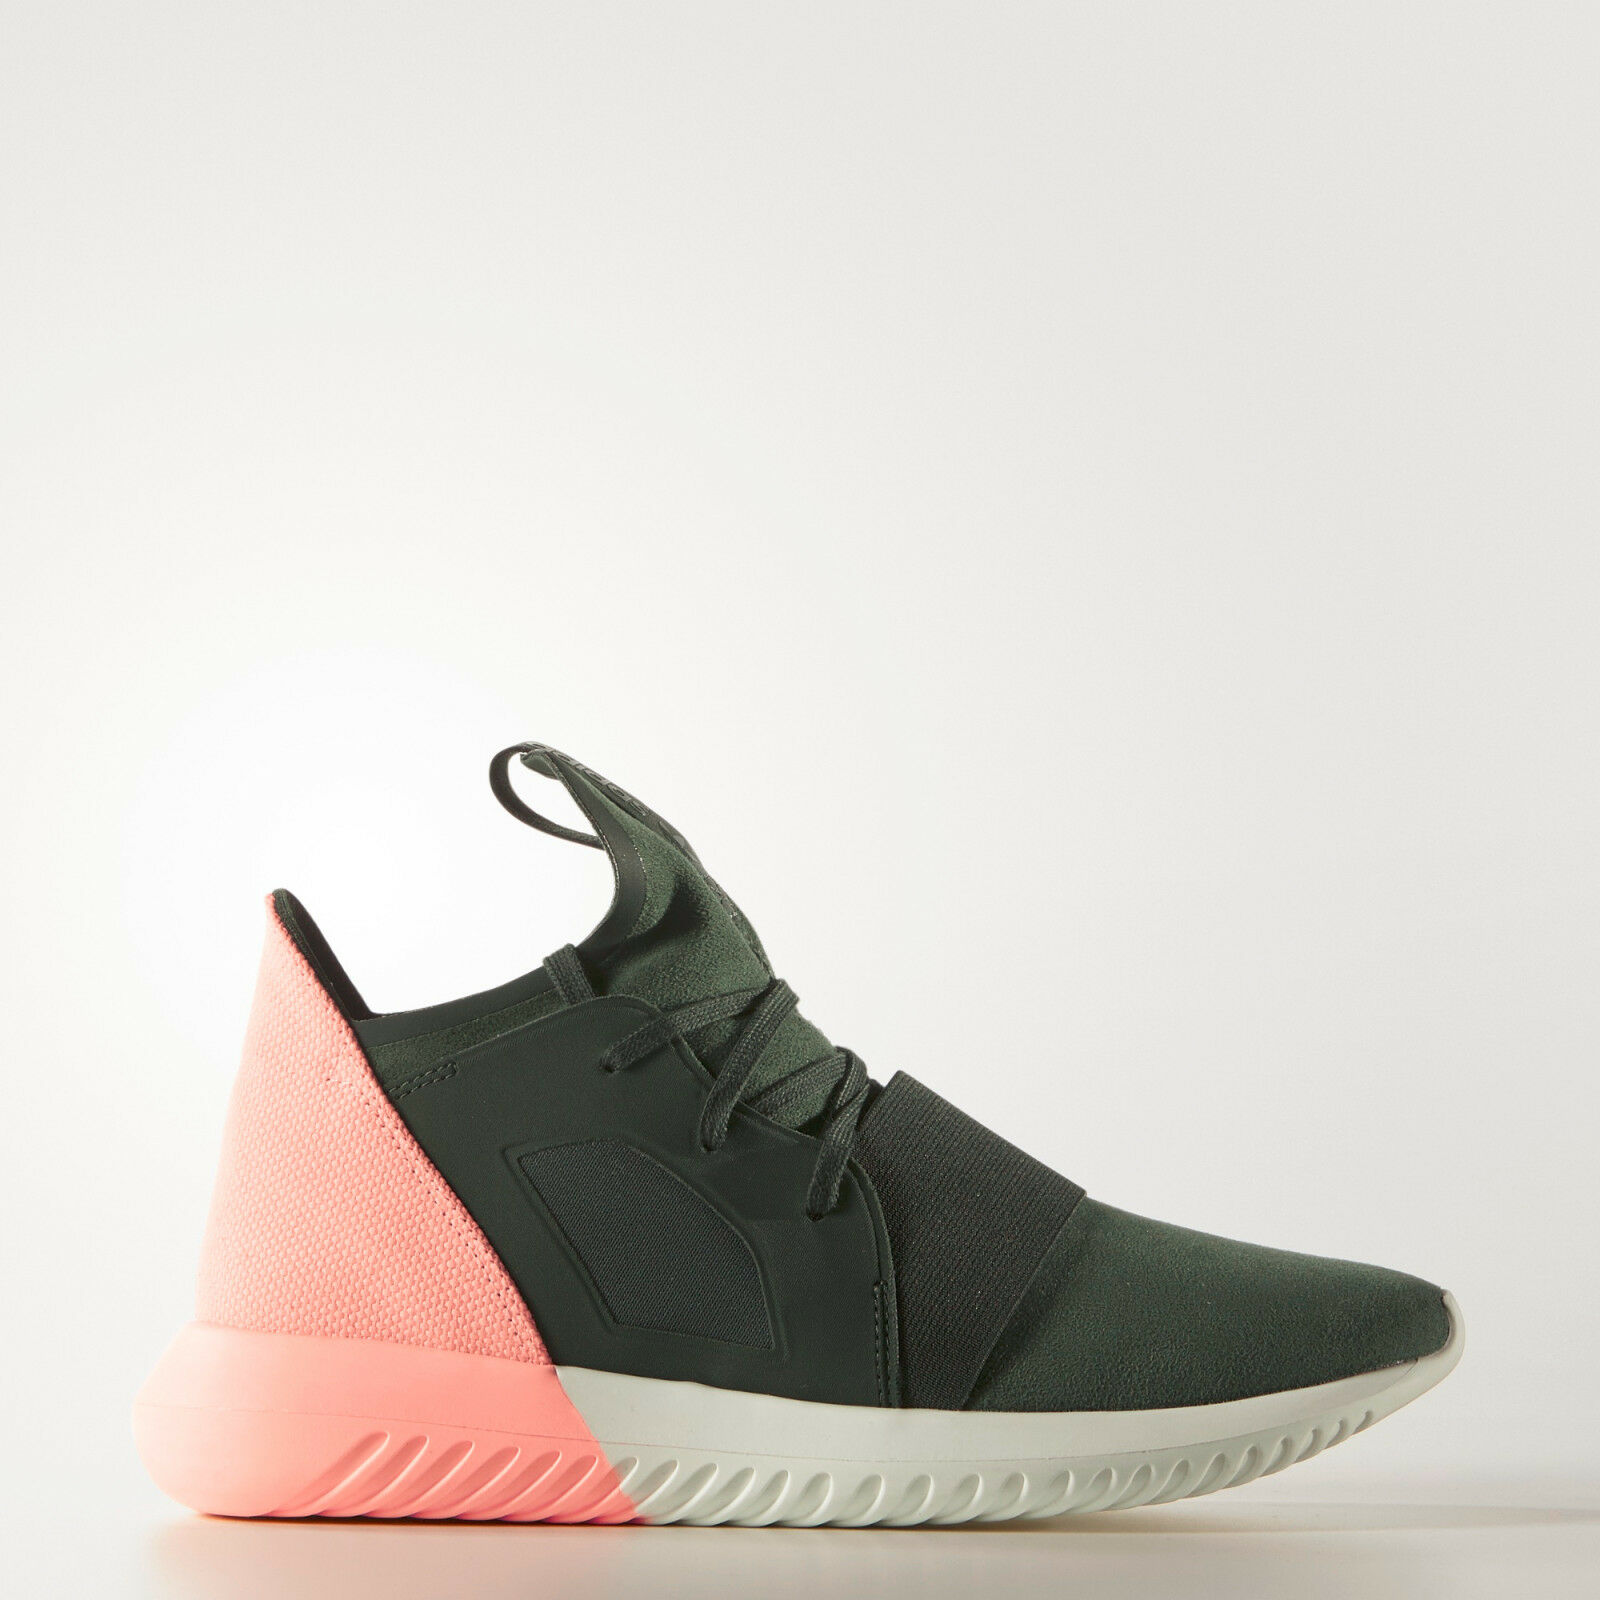 Adidas Tubular Defiant W Sizes 4 to 10 Shadow Green Coral Pink S75248